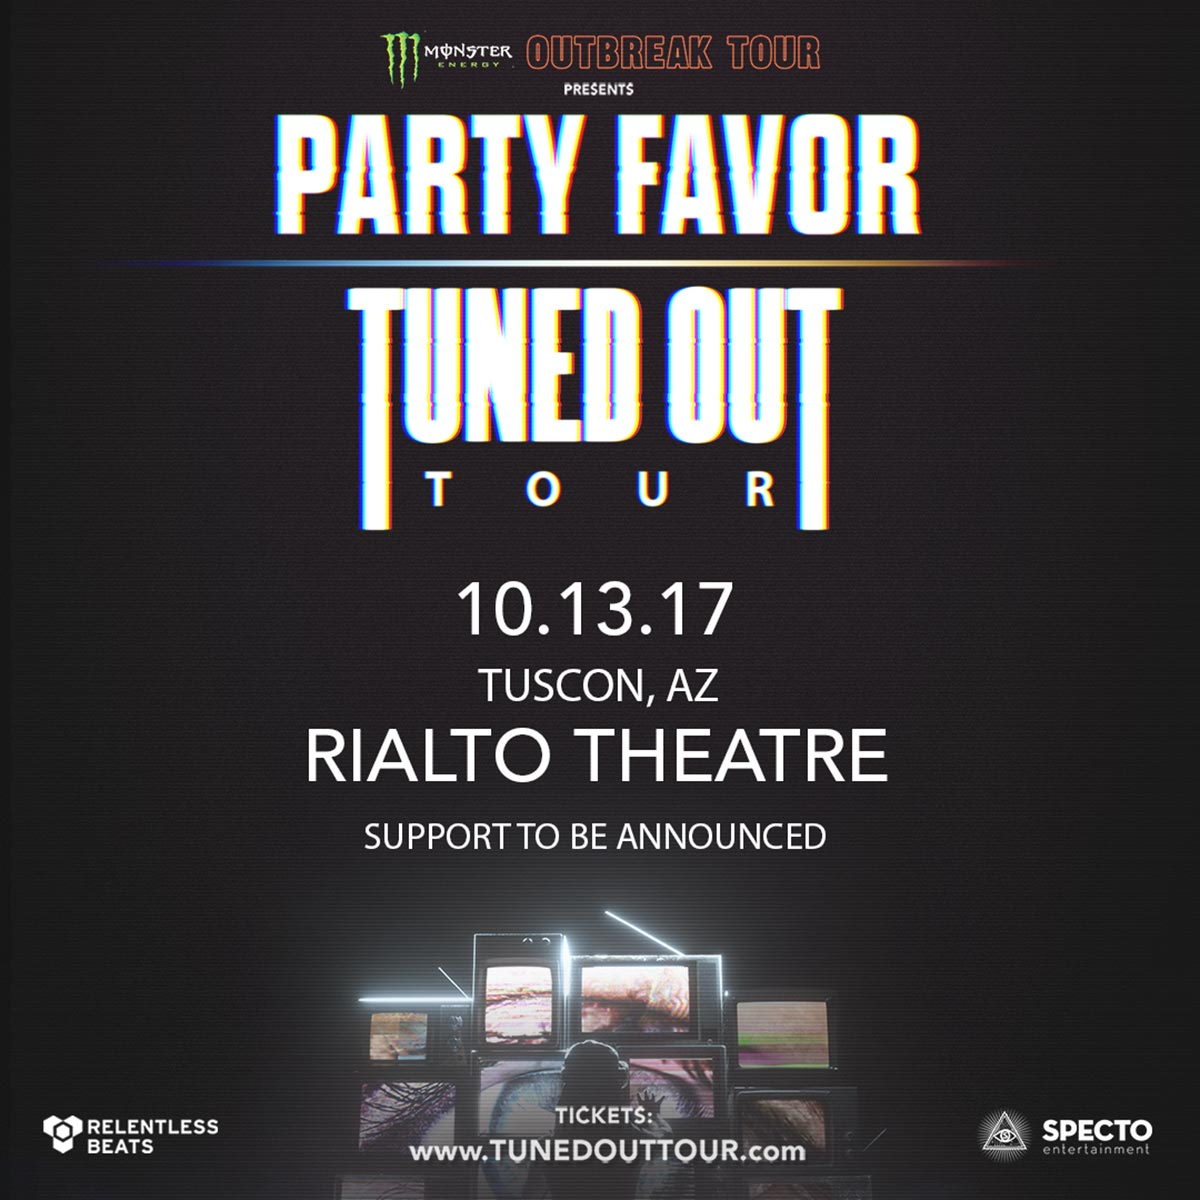 Flyer for Monster Outbreak Tour Presents: Party Favor